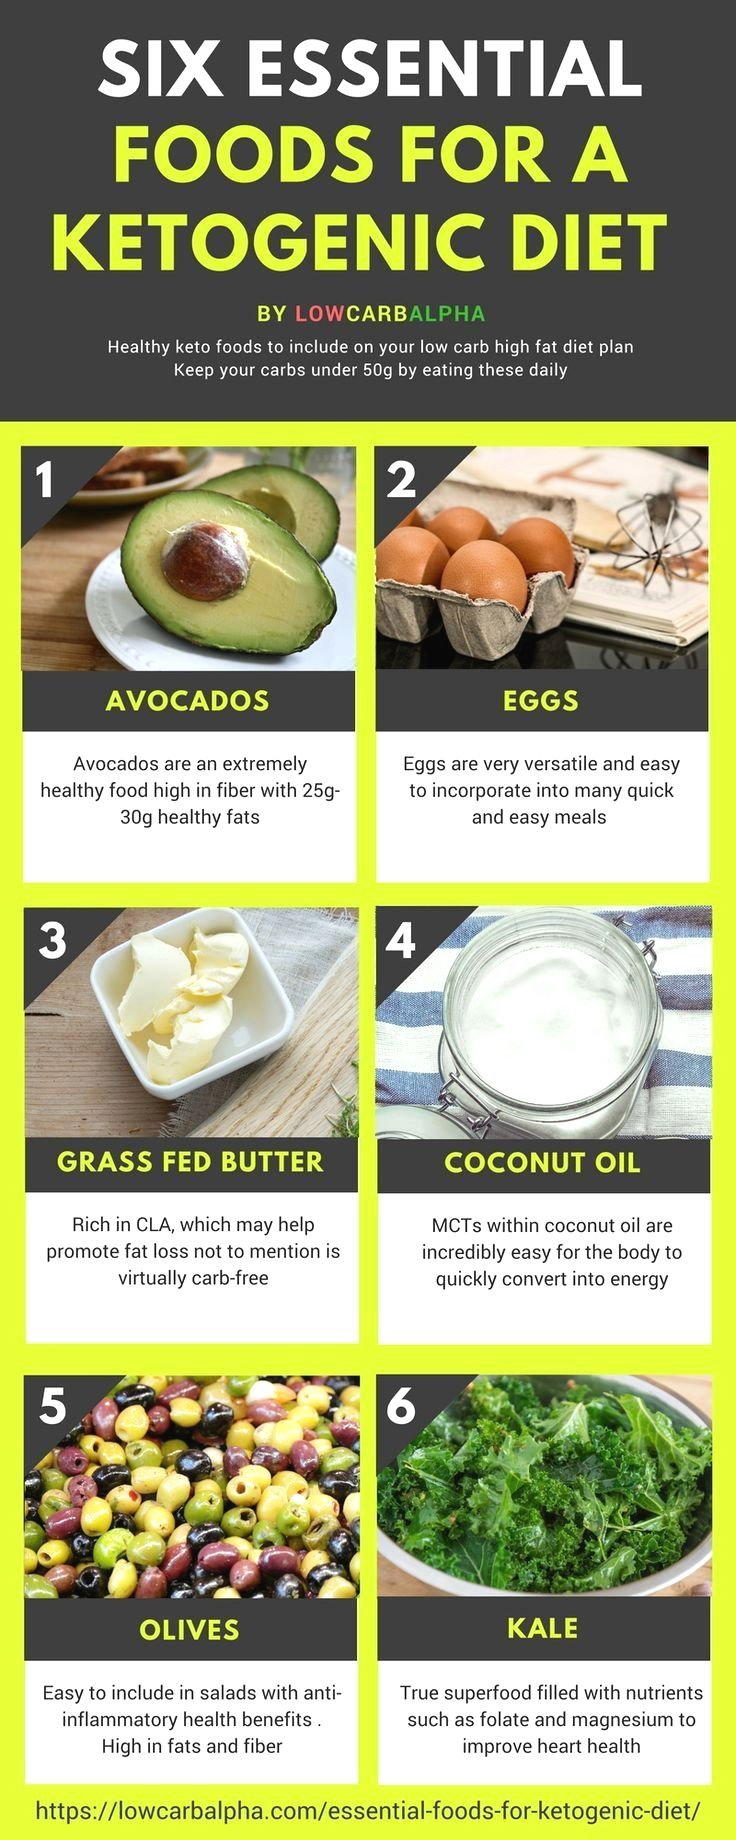 Learn about Six esse Learn about Six essential foods for a Ketogenic Diet lowcarbalpha.com/... & Why are Keto Foods good for health. Experience process of ketosis https://www.pinterest.com/pin/330733166376706122/